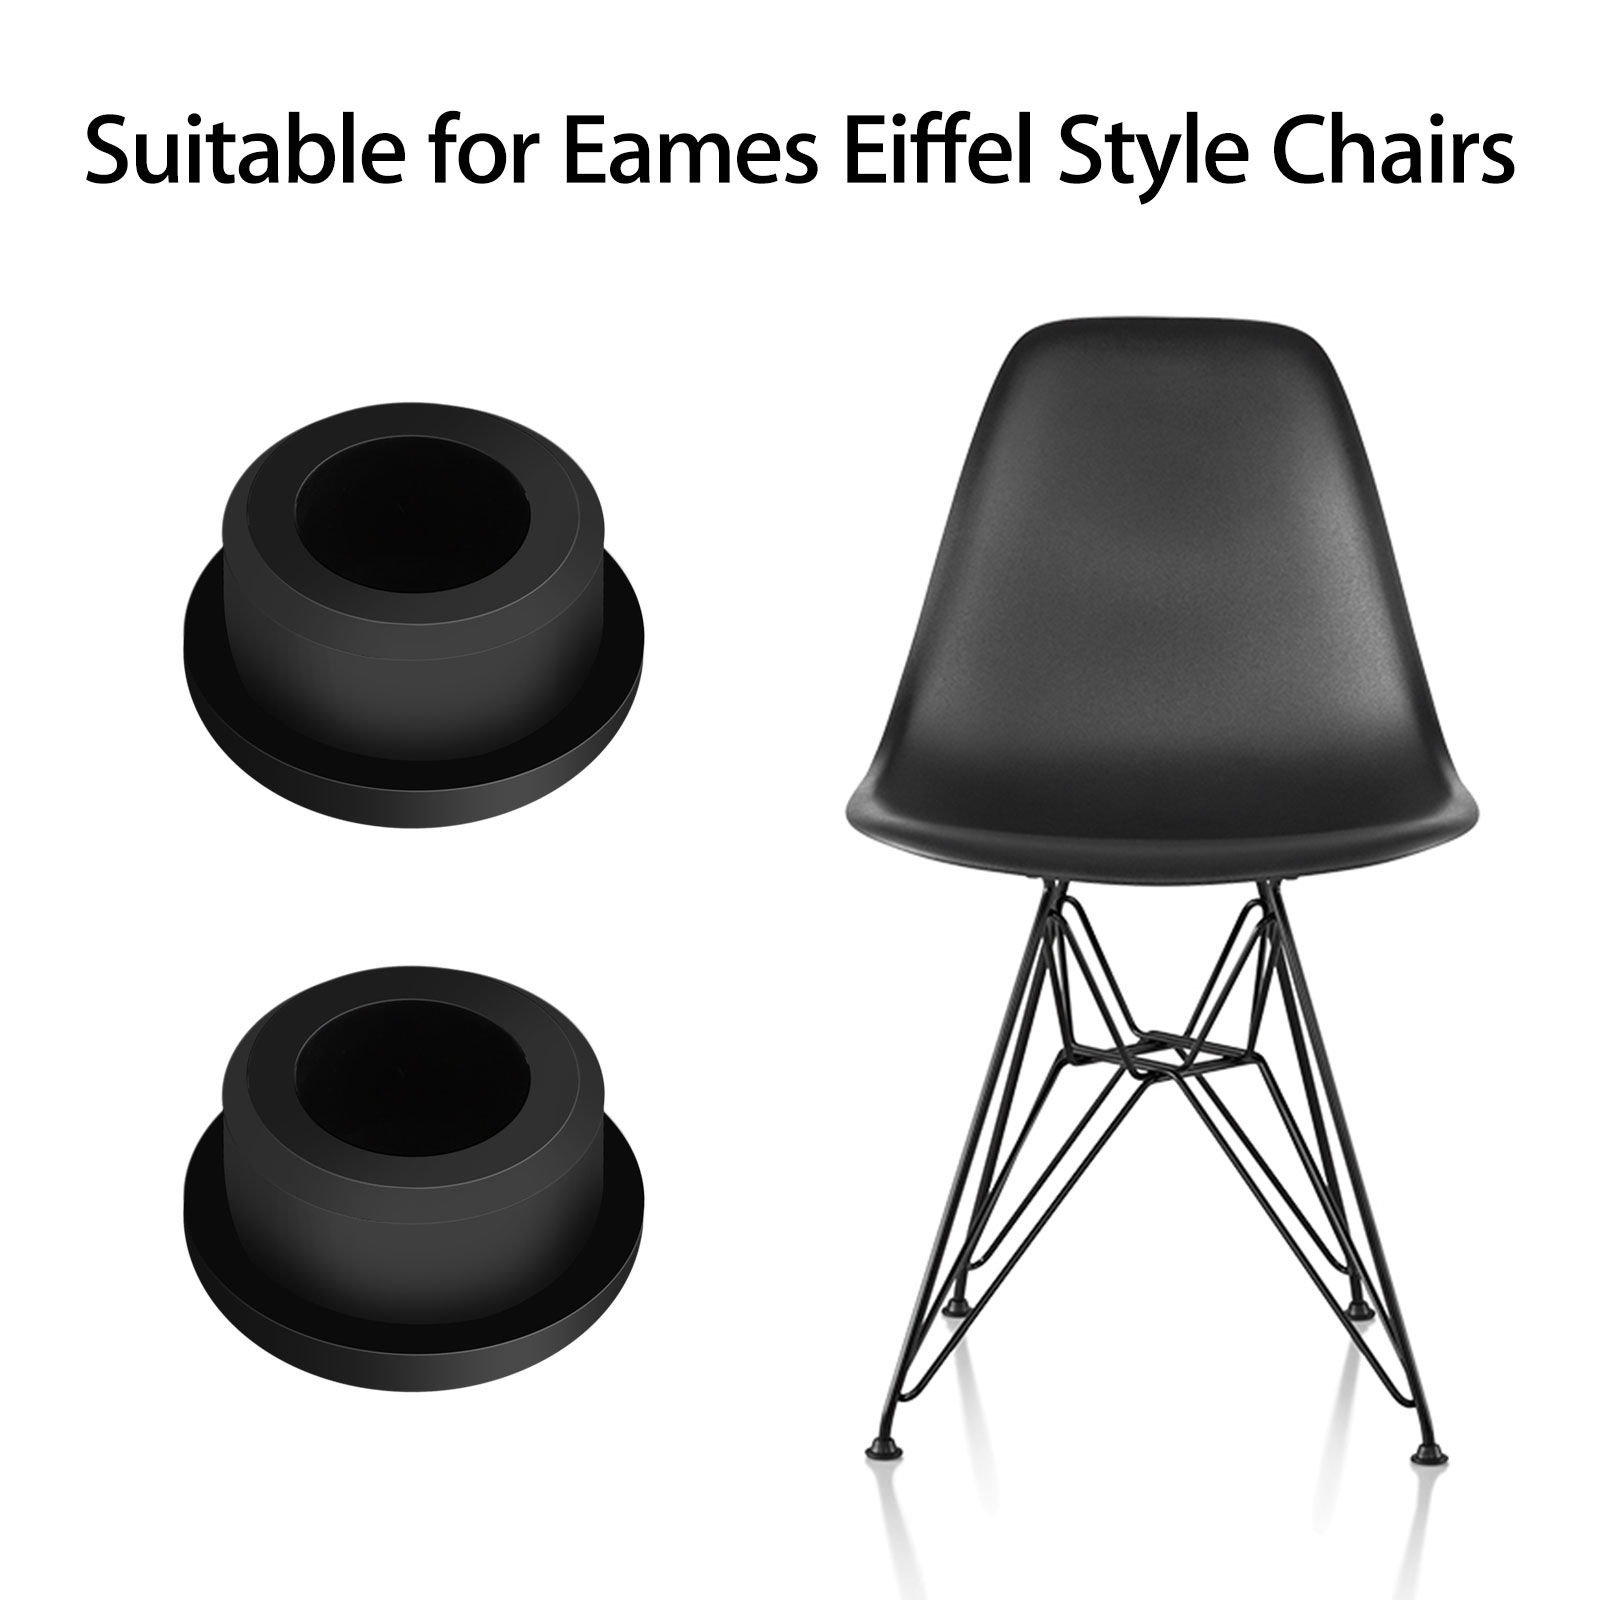 Eames Eiffel Details About 4pcs Chair Glides Replacement Fit For Eames Eiffel Style Furniture Feet Black